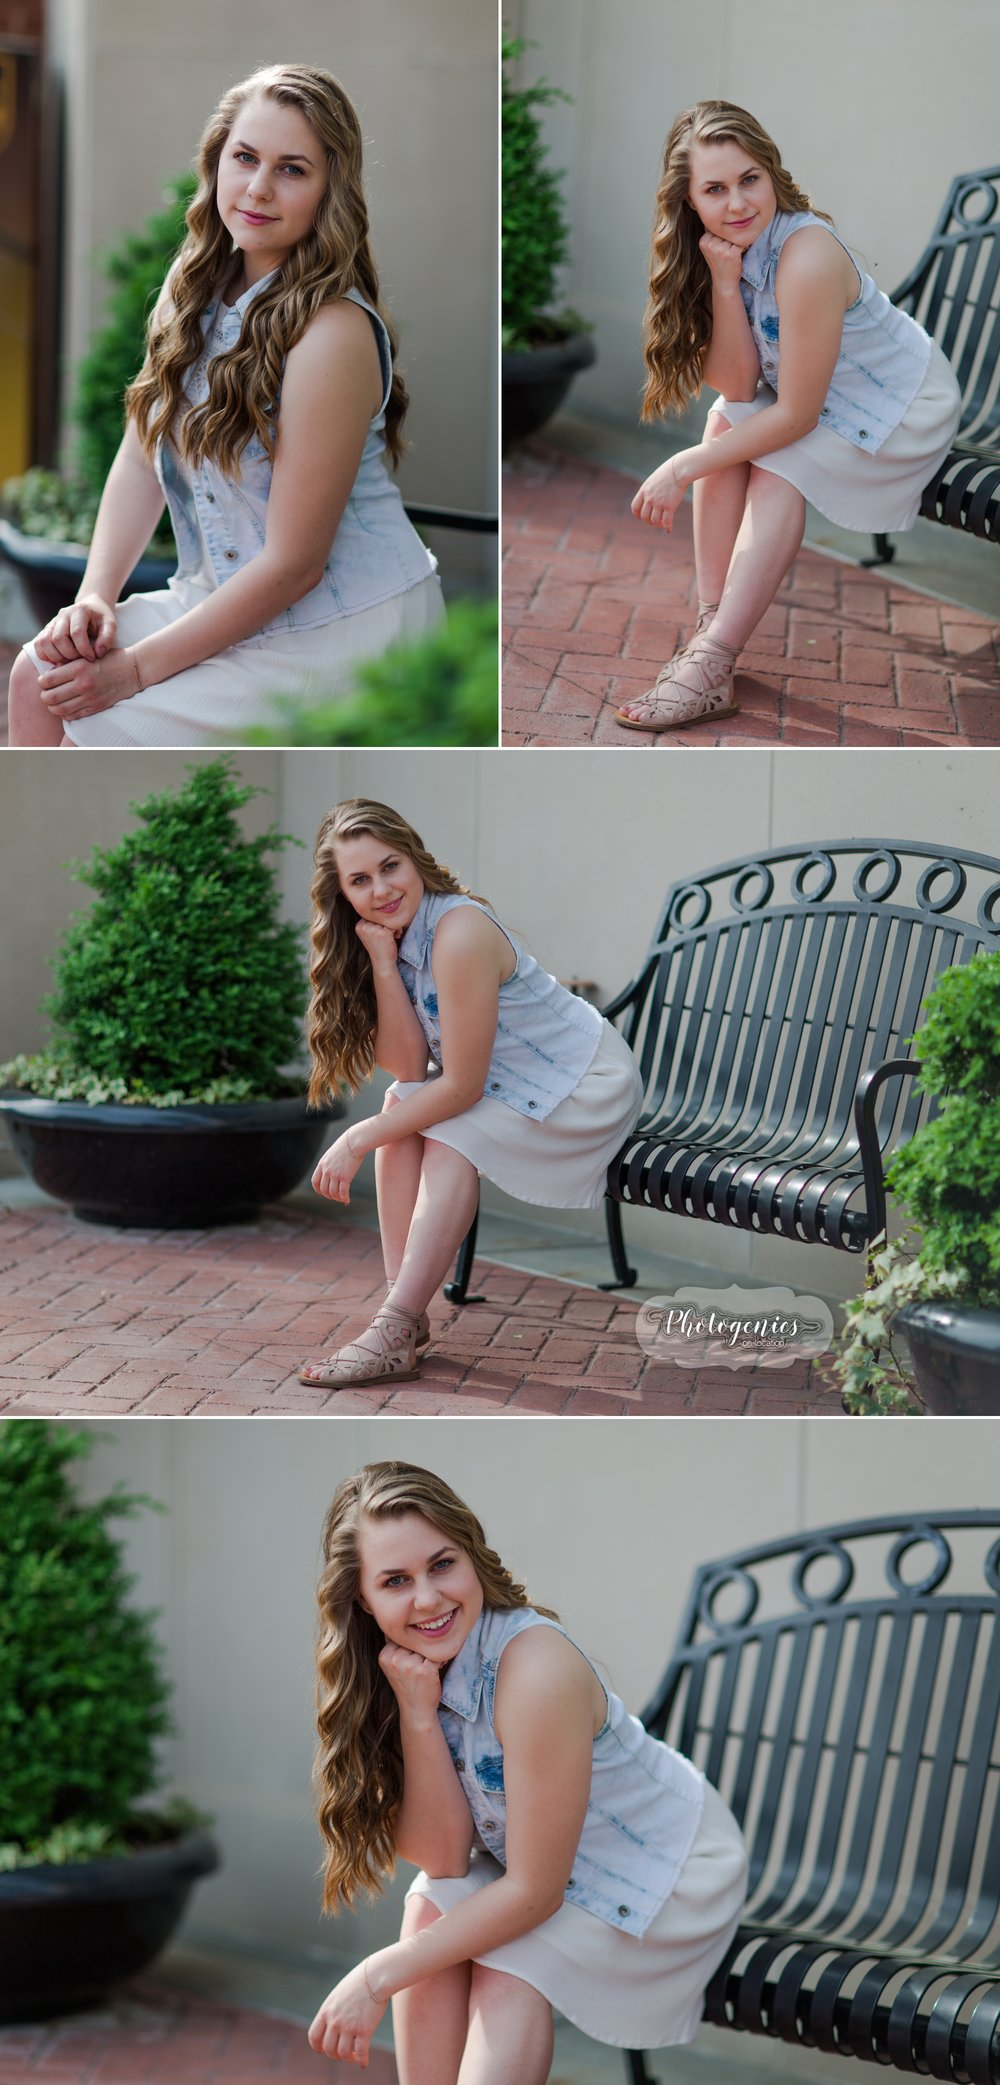 senior_girl_urban_photography_poses_small_town_ideas_missouri_outdoor_cafe_unique_morning_pretty_lighting_posing_outfit_what_to_wear